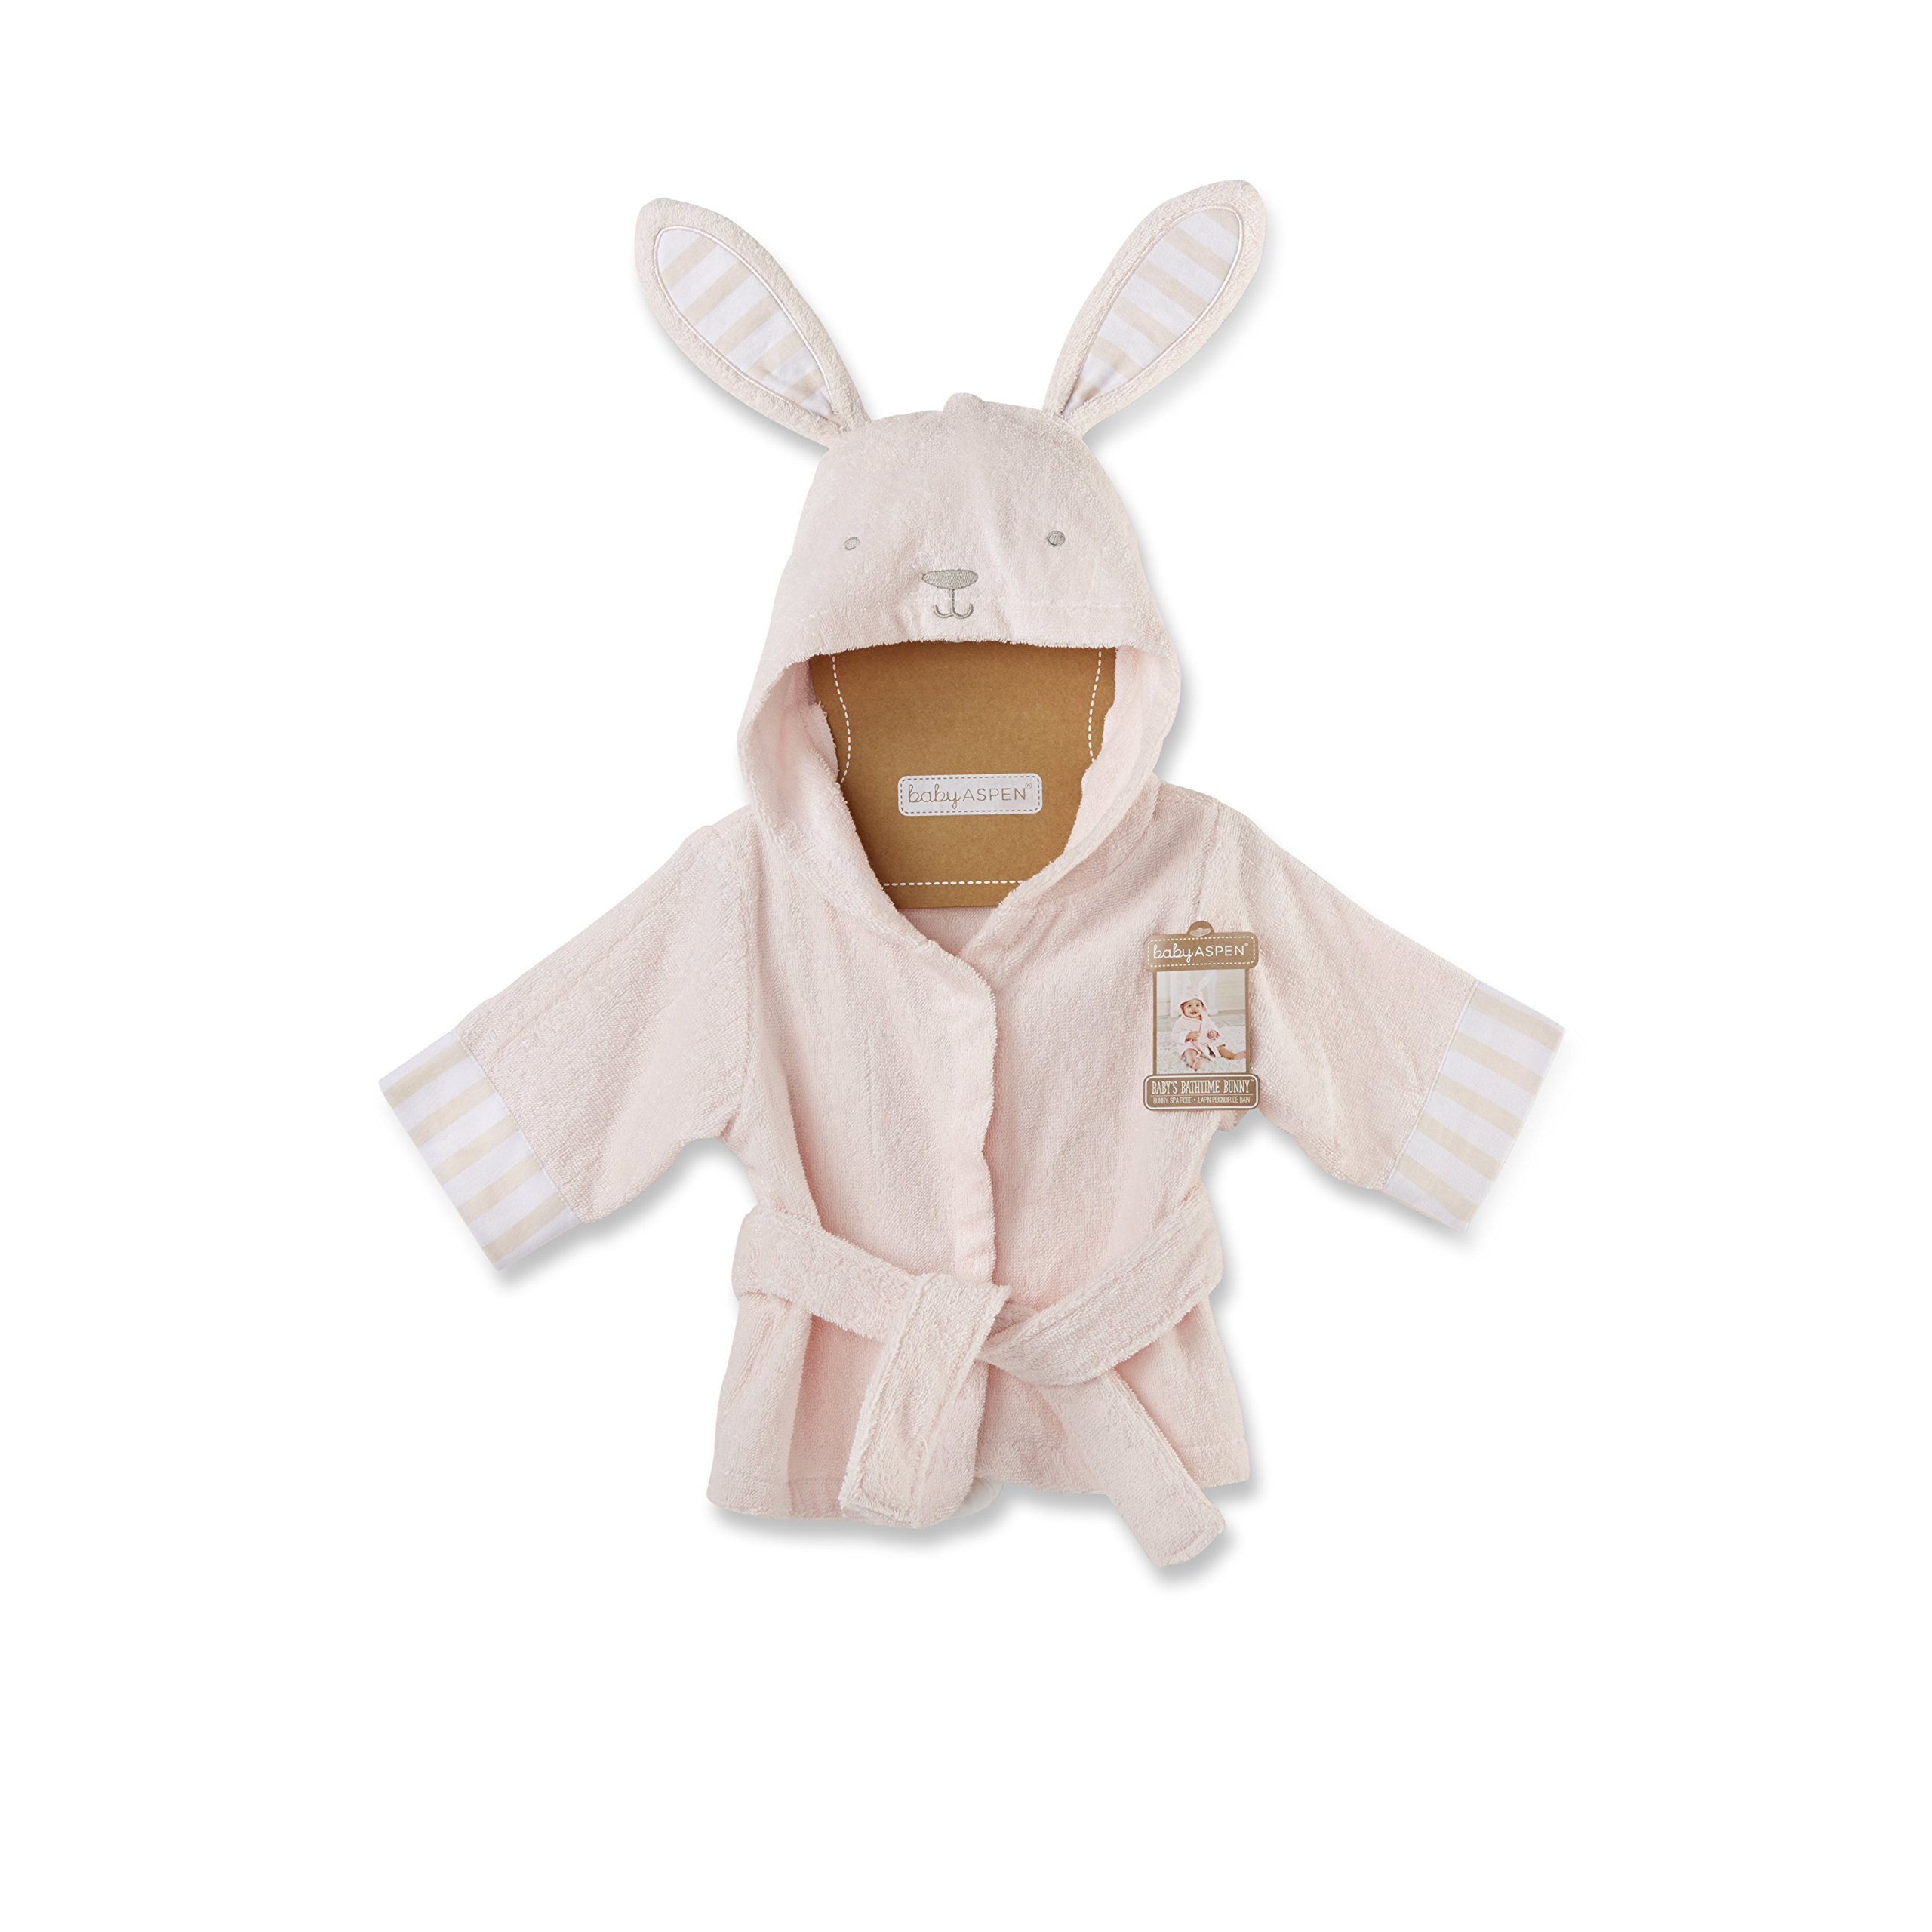 Baby Aspen Baby's Bath Time Bunny Hooded Spa Robe, Pink, 0-9 Months by Baby Aspen